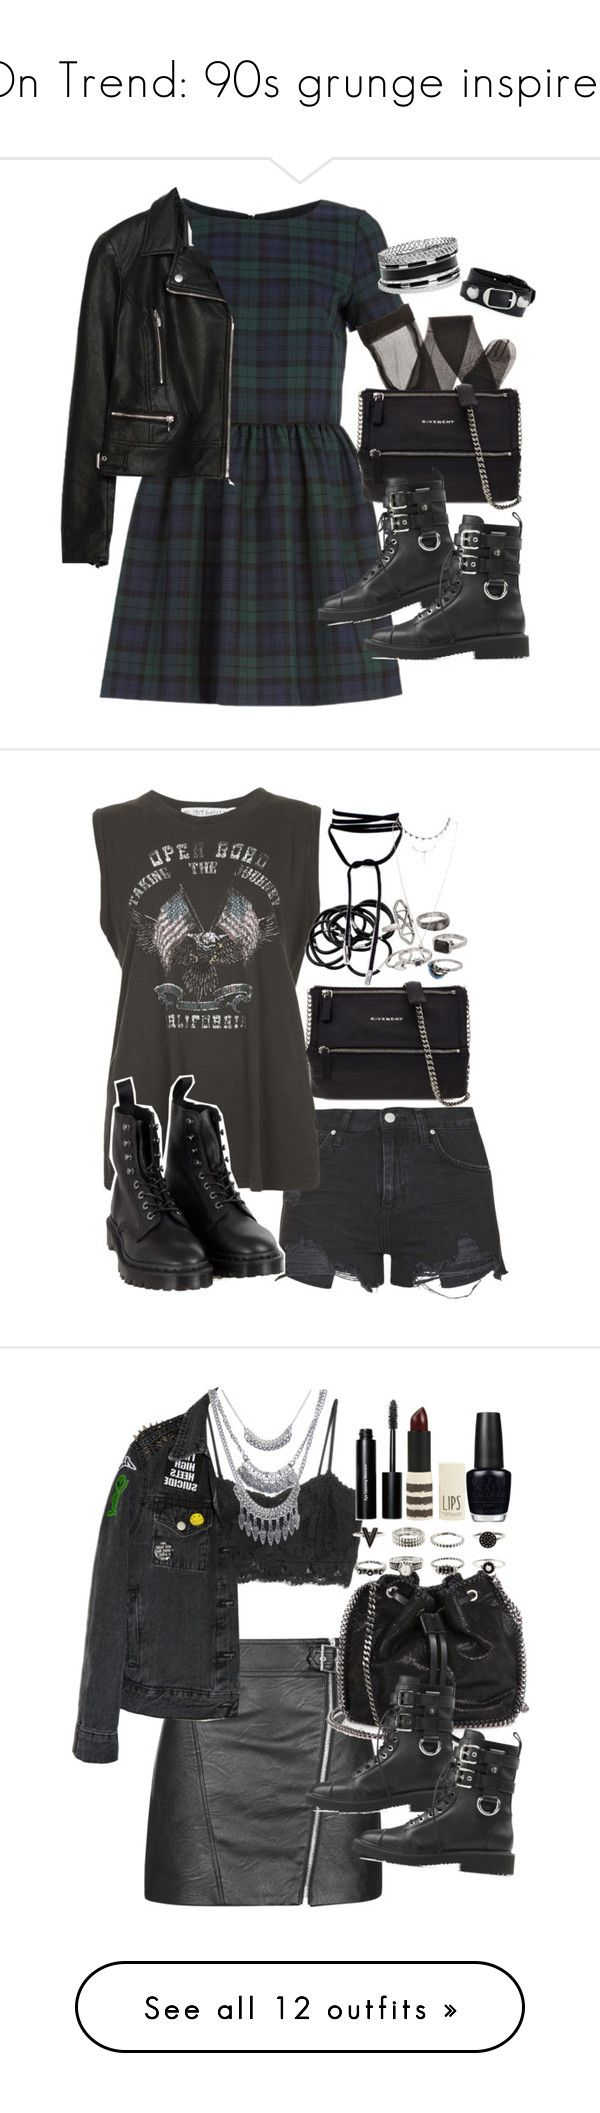 """""""On Trend: 90s grunge inspired"""" by ferned ❤ liked on Polyvore featuring River Island, Zara, Givenchy, Giuseppe Zanotti, GUESS, Balenciaga, Topshop, Project Social T, Dr. Martens and H&M"""